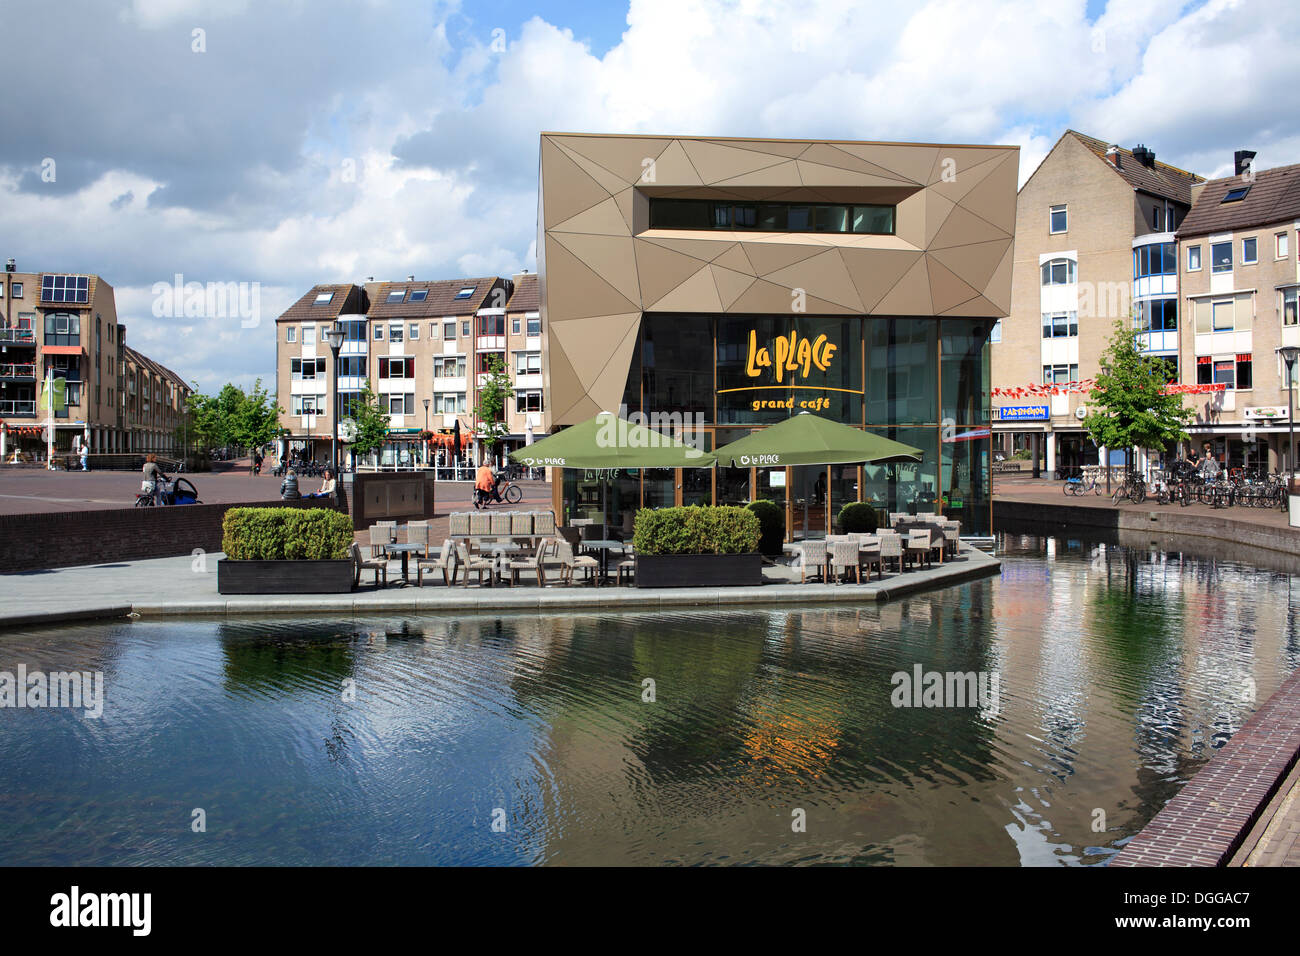 The La Place cafe and water in part of the traffic-free town centre of Houten, a Dutch new town near Utrecht, The Netherlands - Stock Image